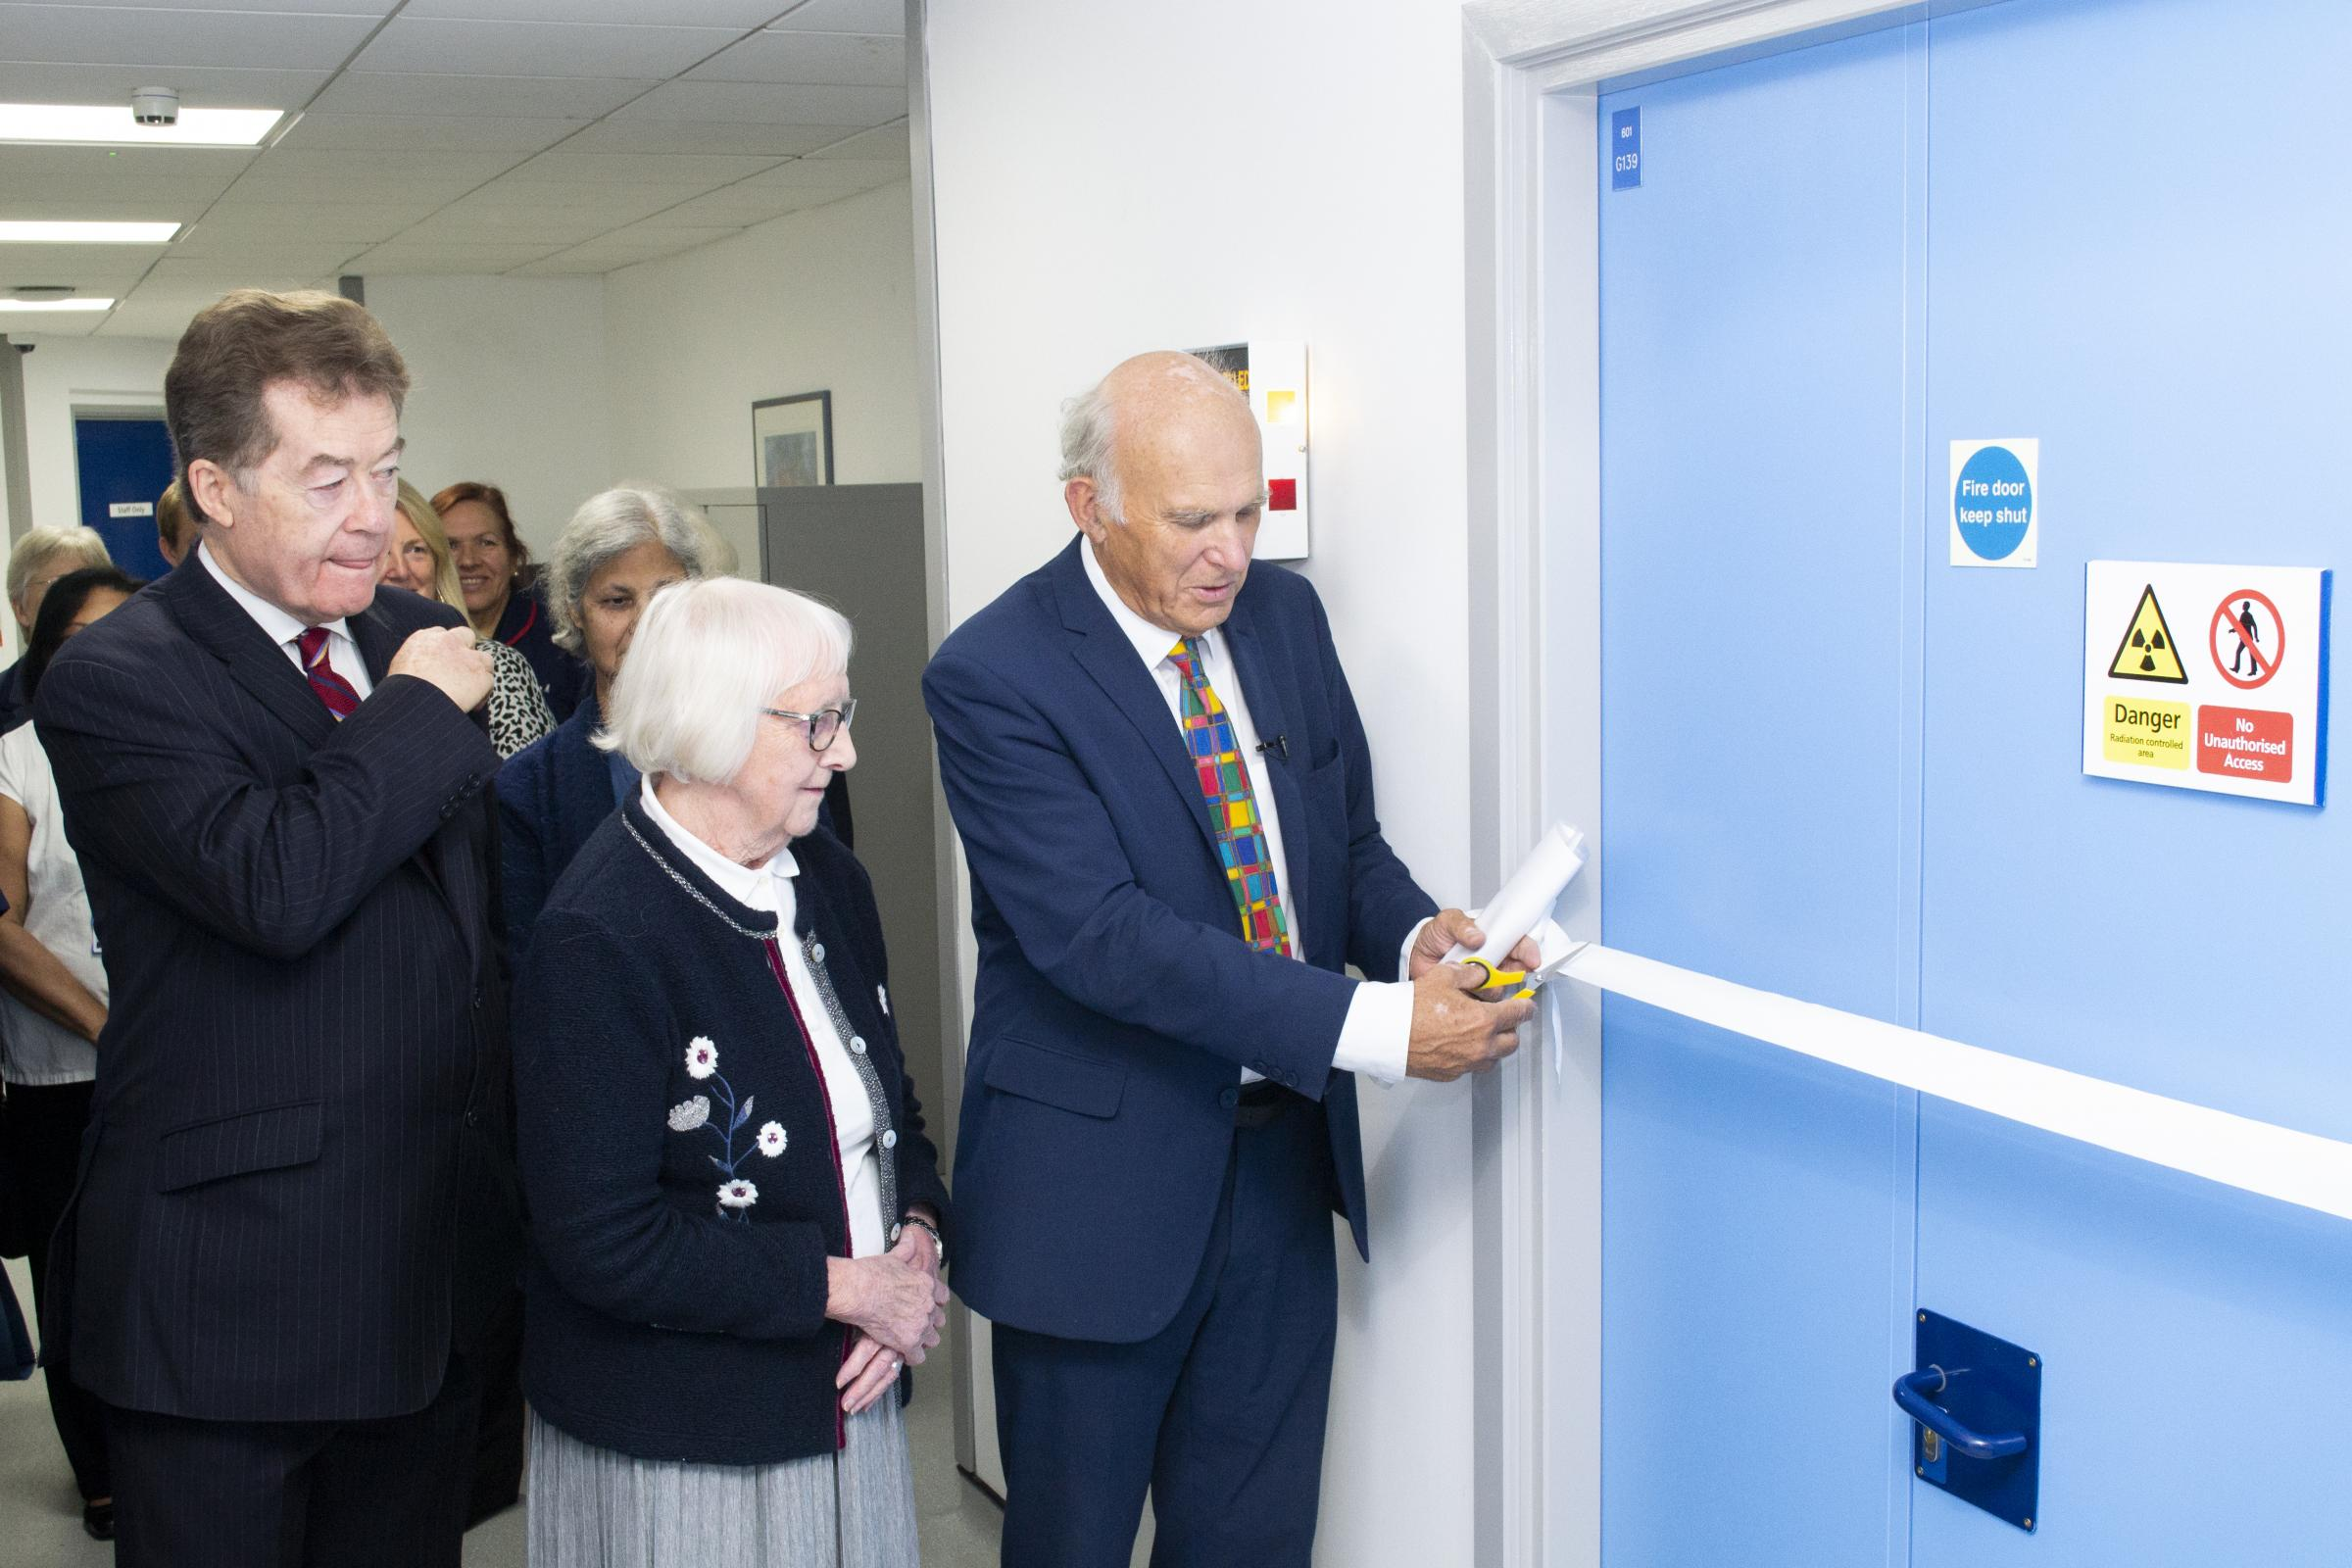 Vince Cable cutting the ribbon.